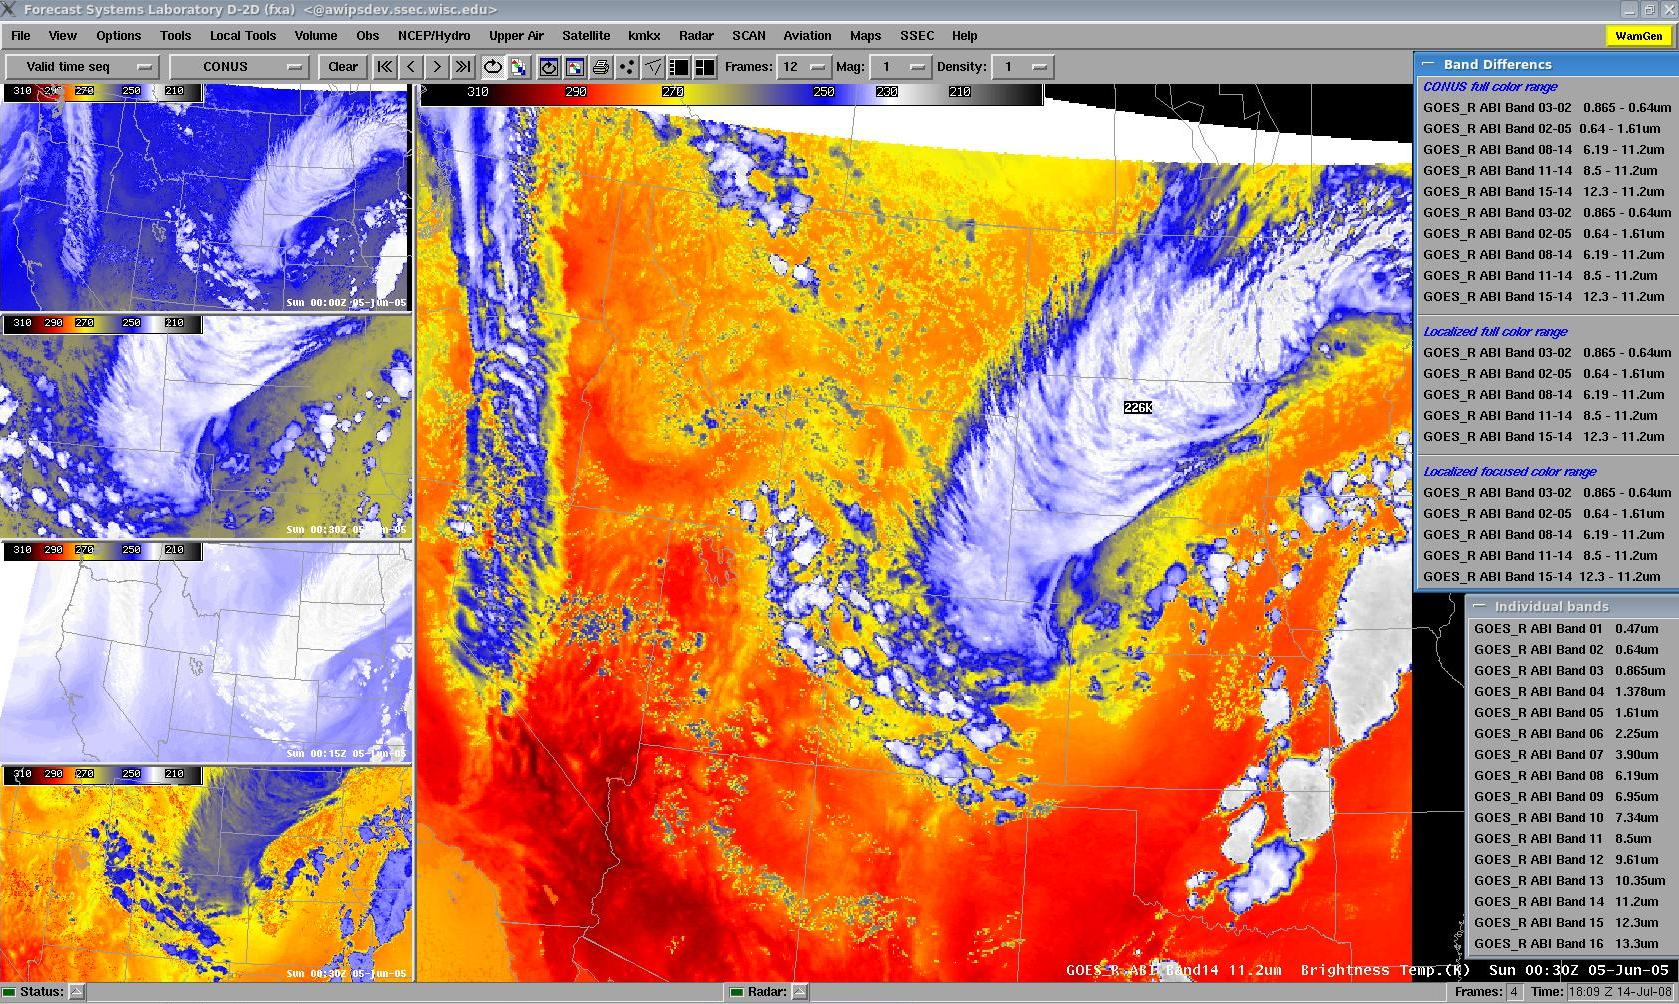 ABI imagery in AWIPS